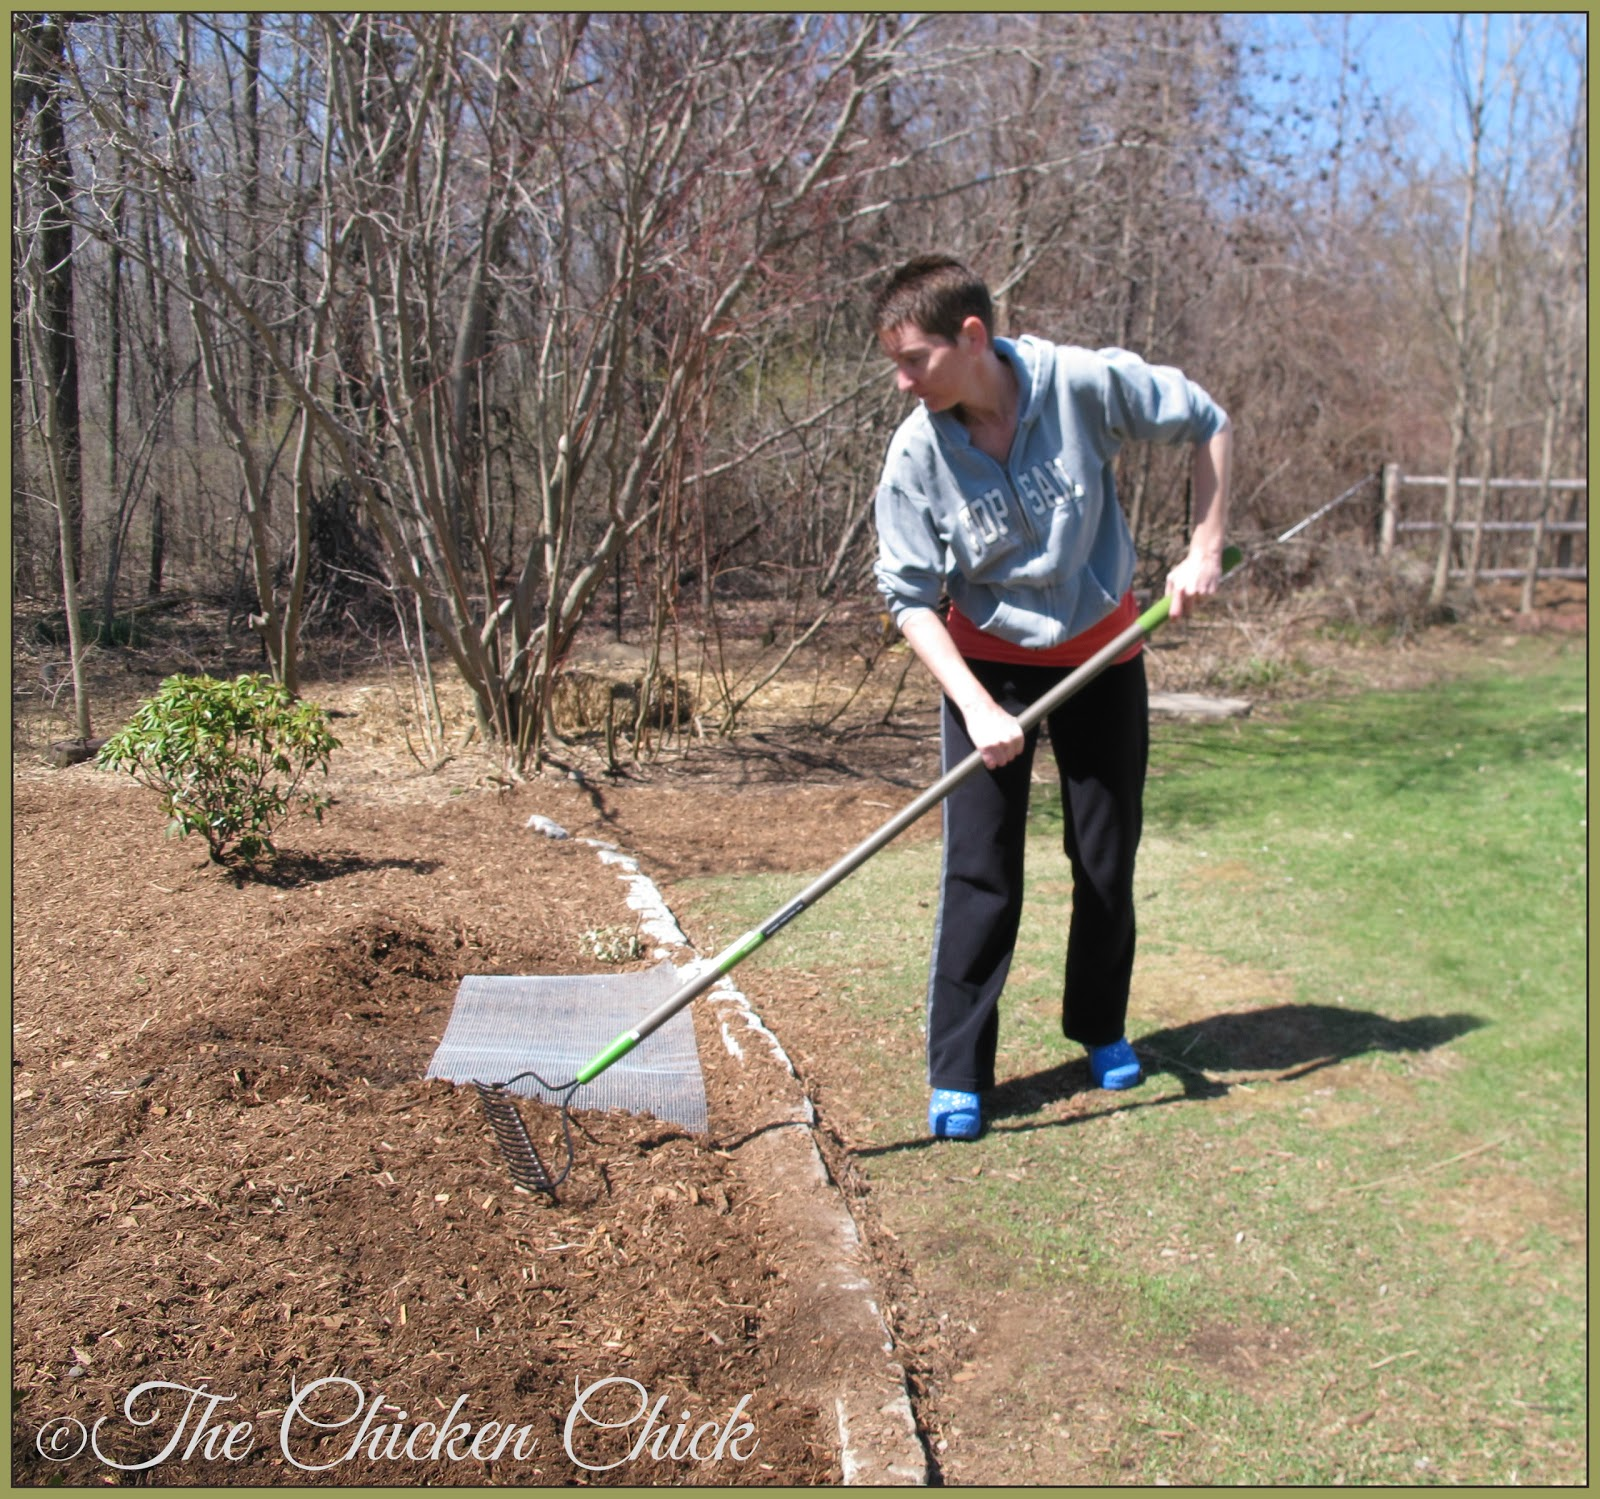 Rake mulch on top of hardware cloth to keep chickens out of certain flower beds.